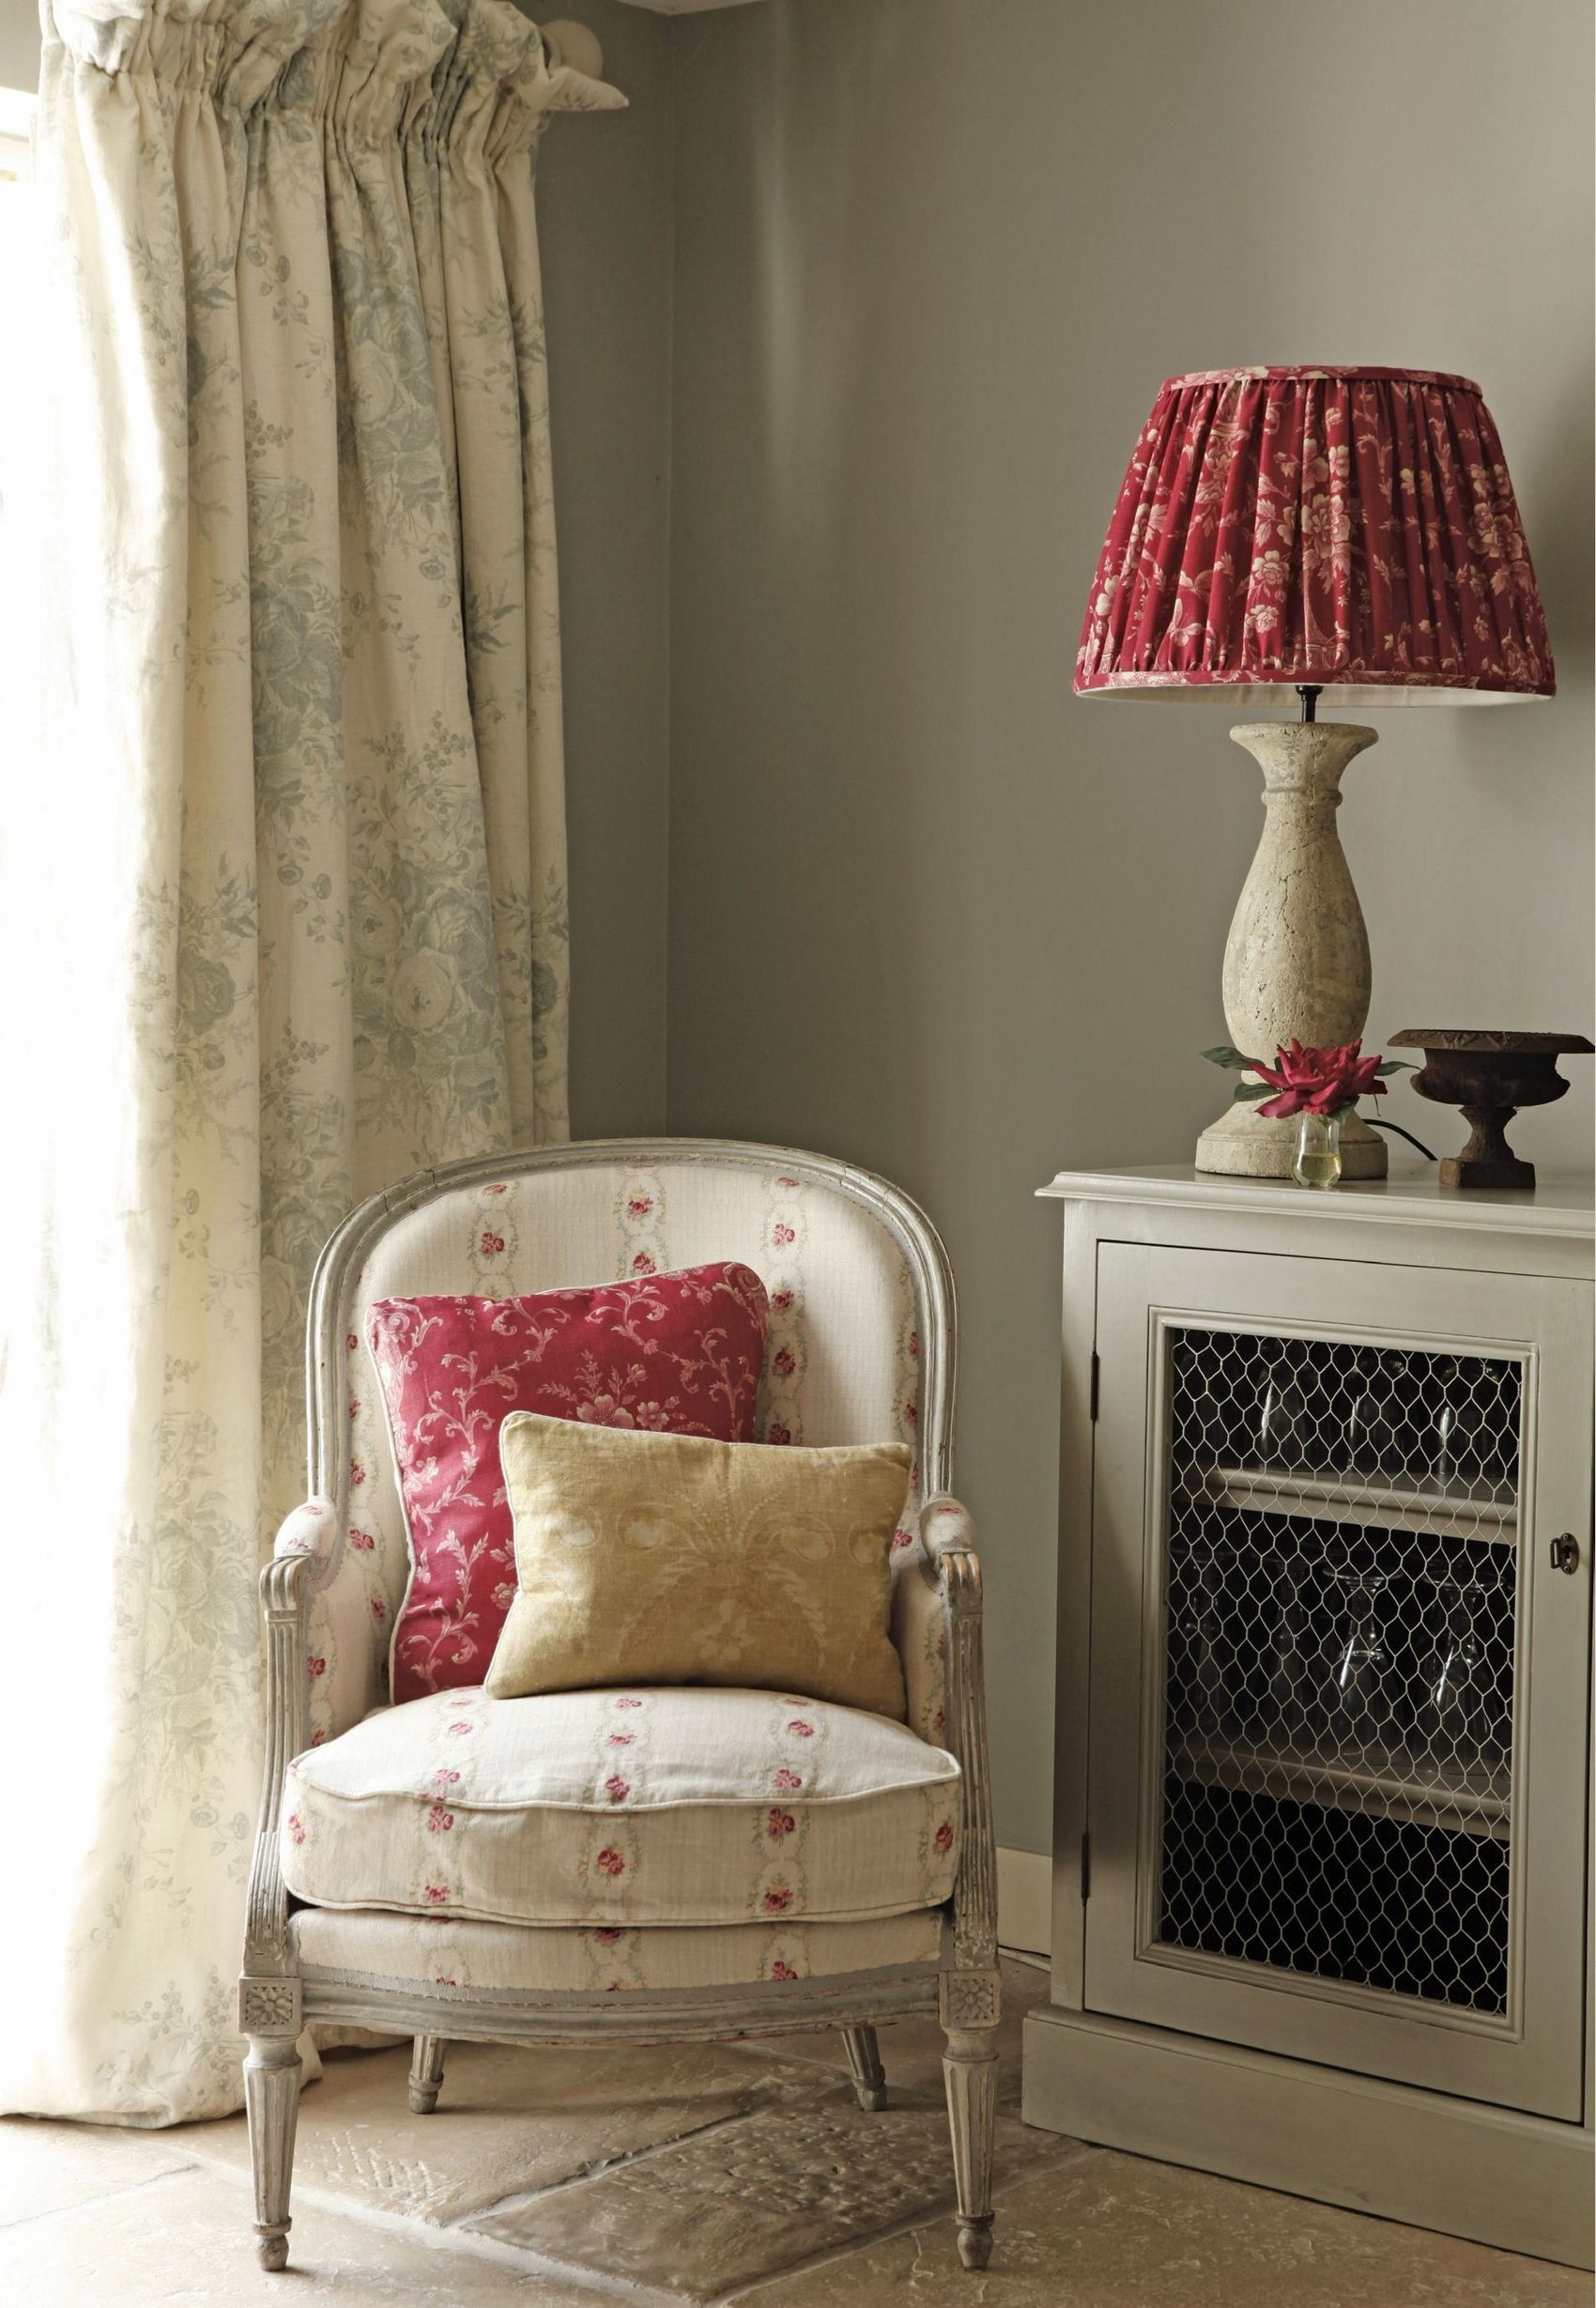 love 5this idea for a salon reception area. reupholster and pleat a cheapy thrift store lamp to match throw pillows.